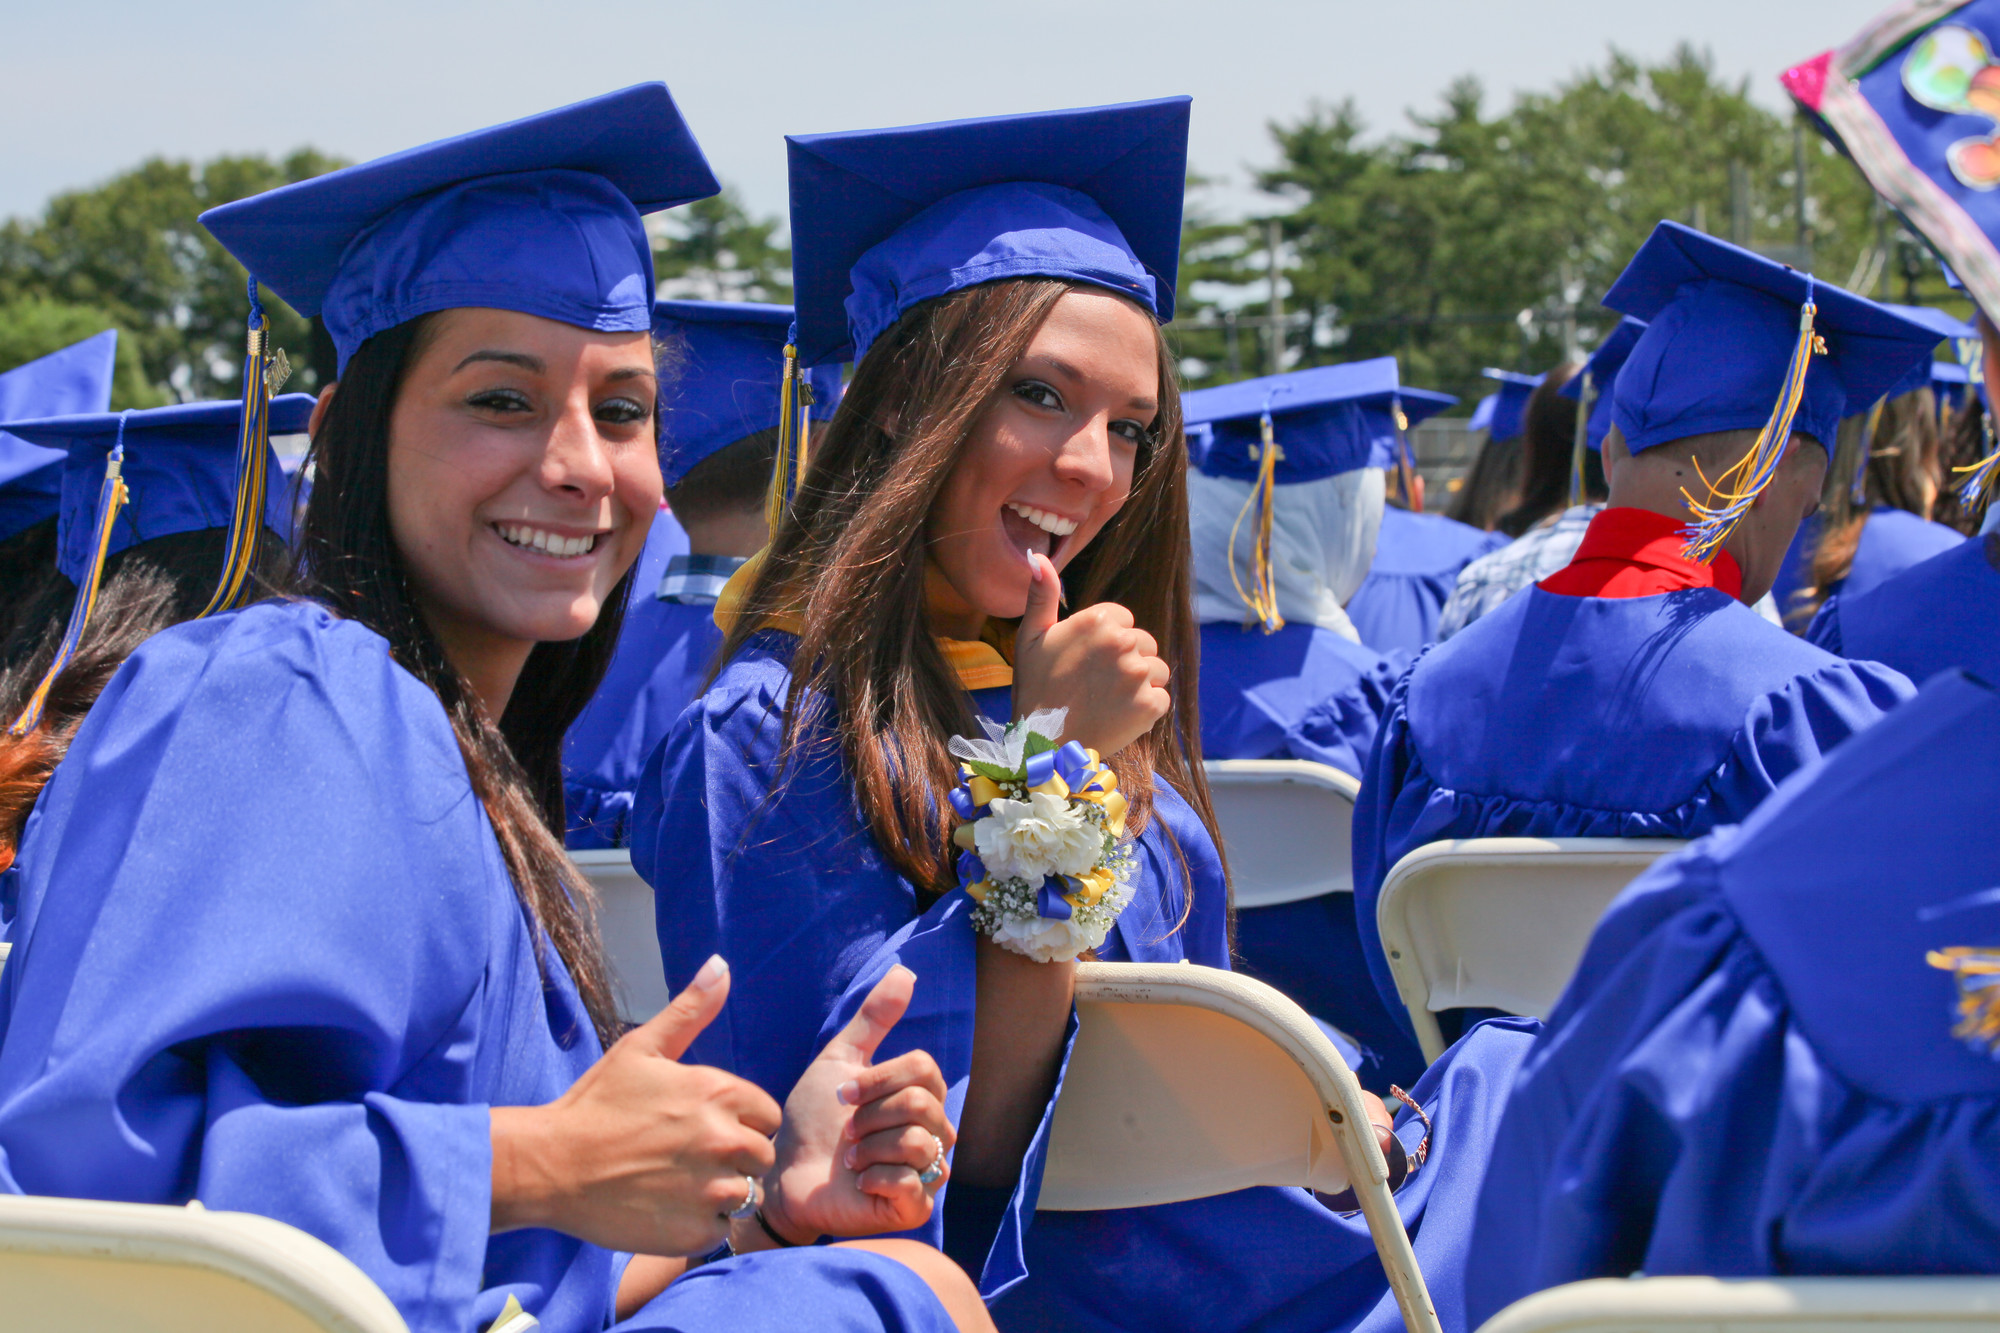 Amanda Soldano and Erin Masso were excited to graduate from East Meadow High School.